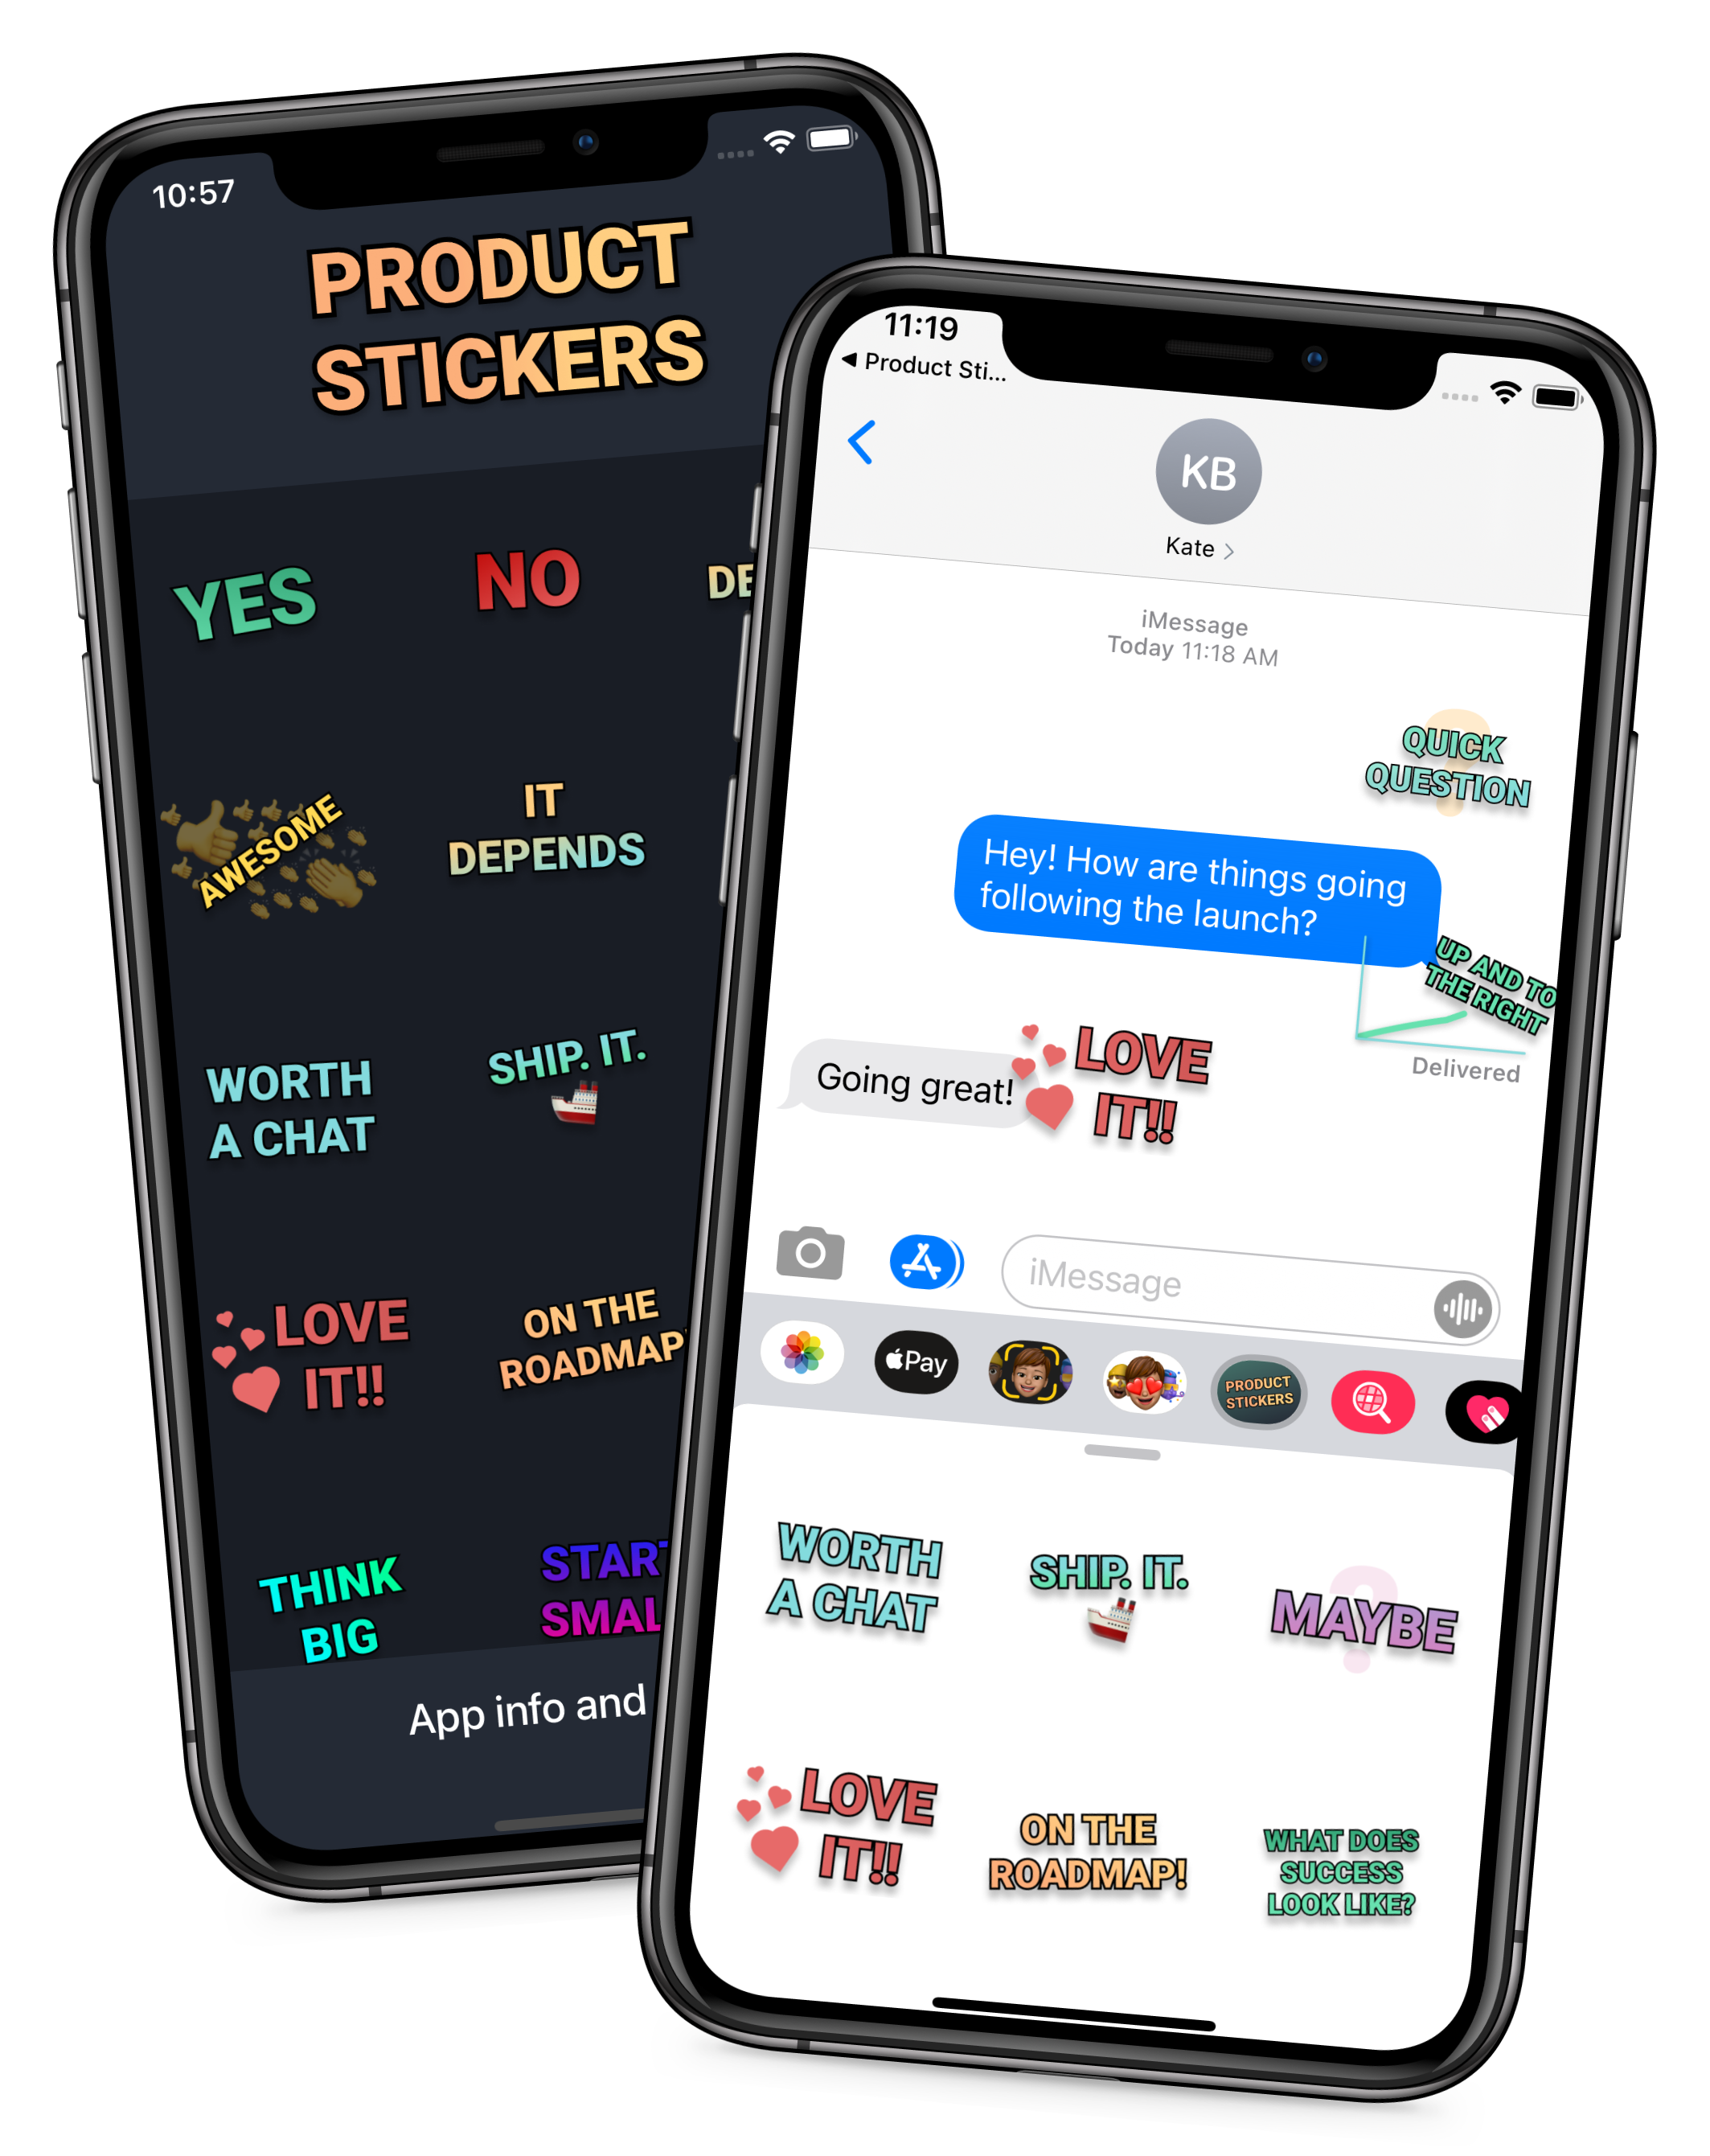 Product Stickers in iMessage